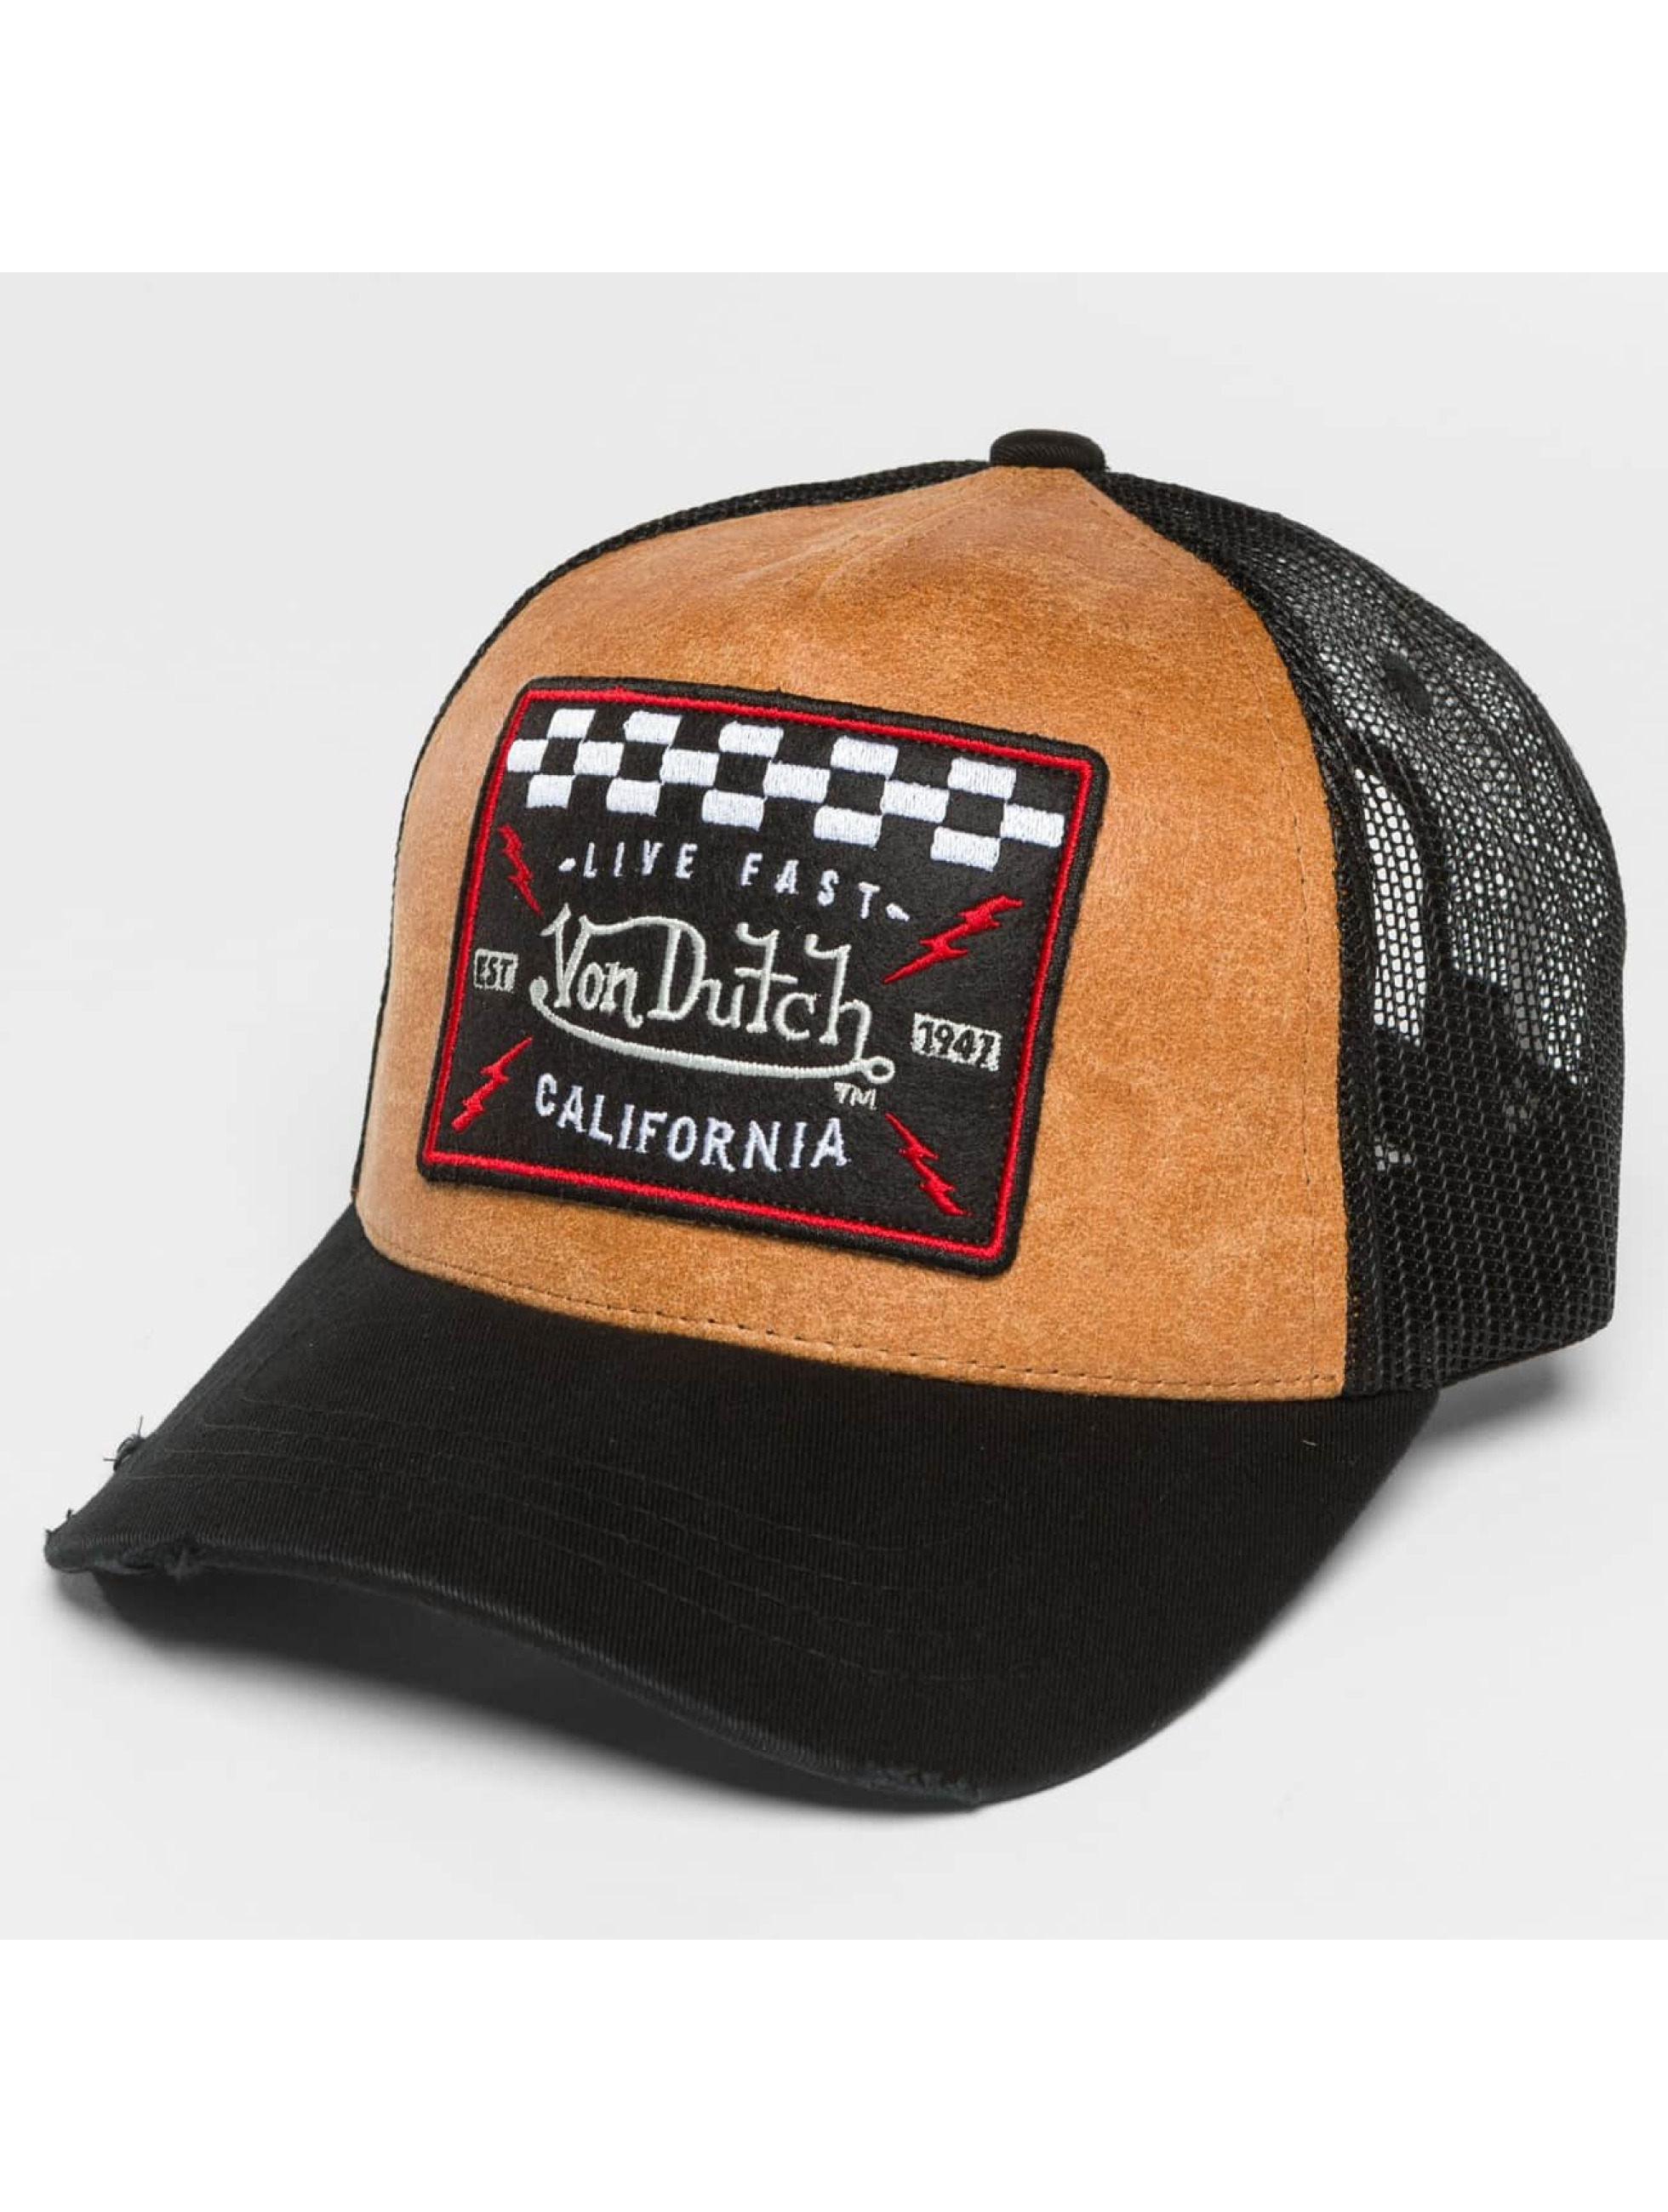 Von Dutch Gorra Trucker California negro